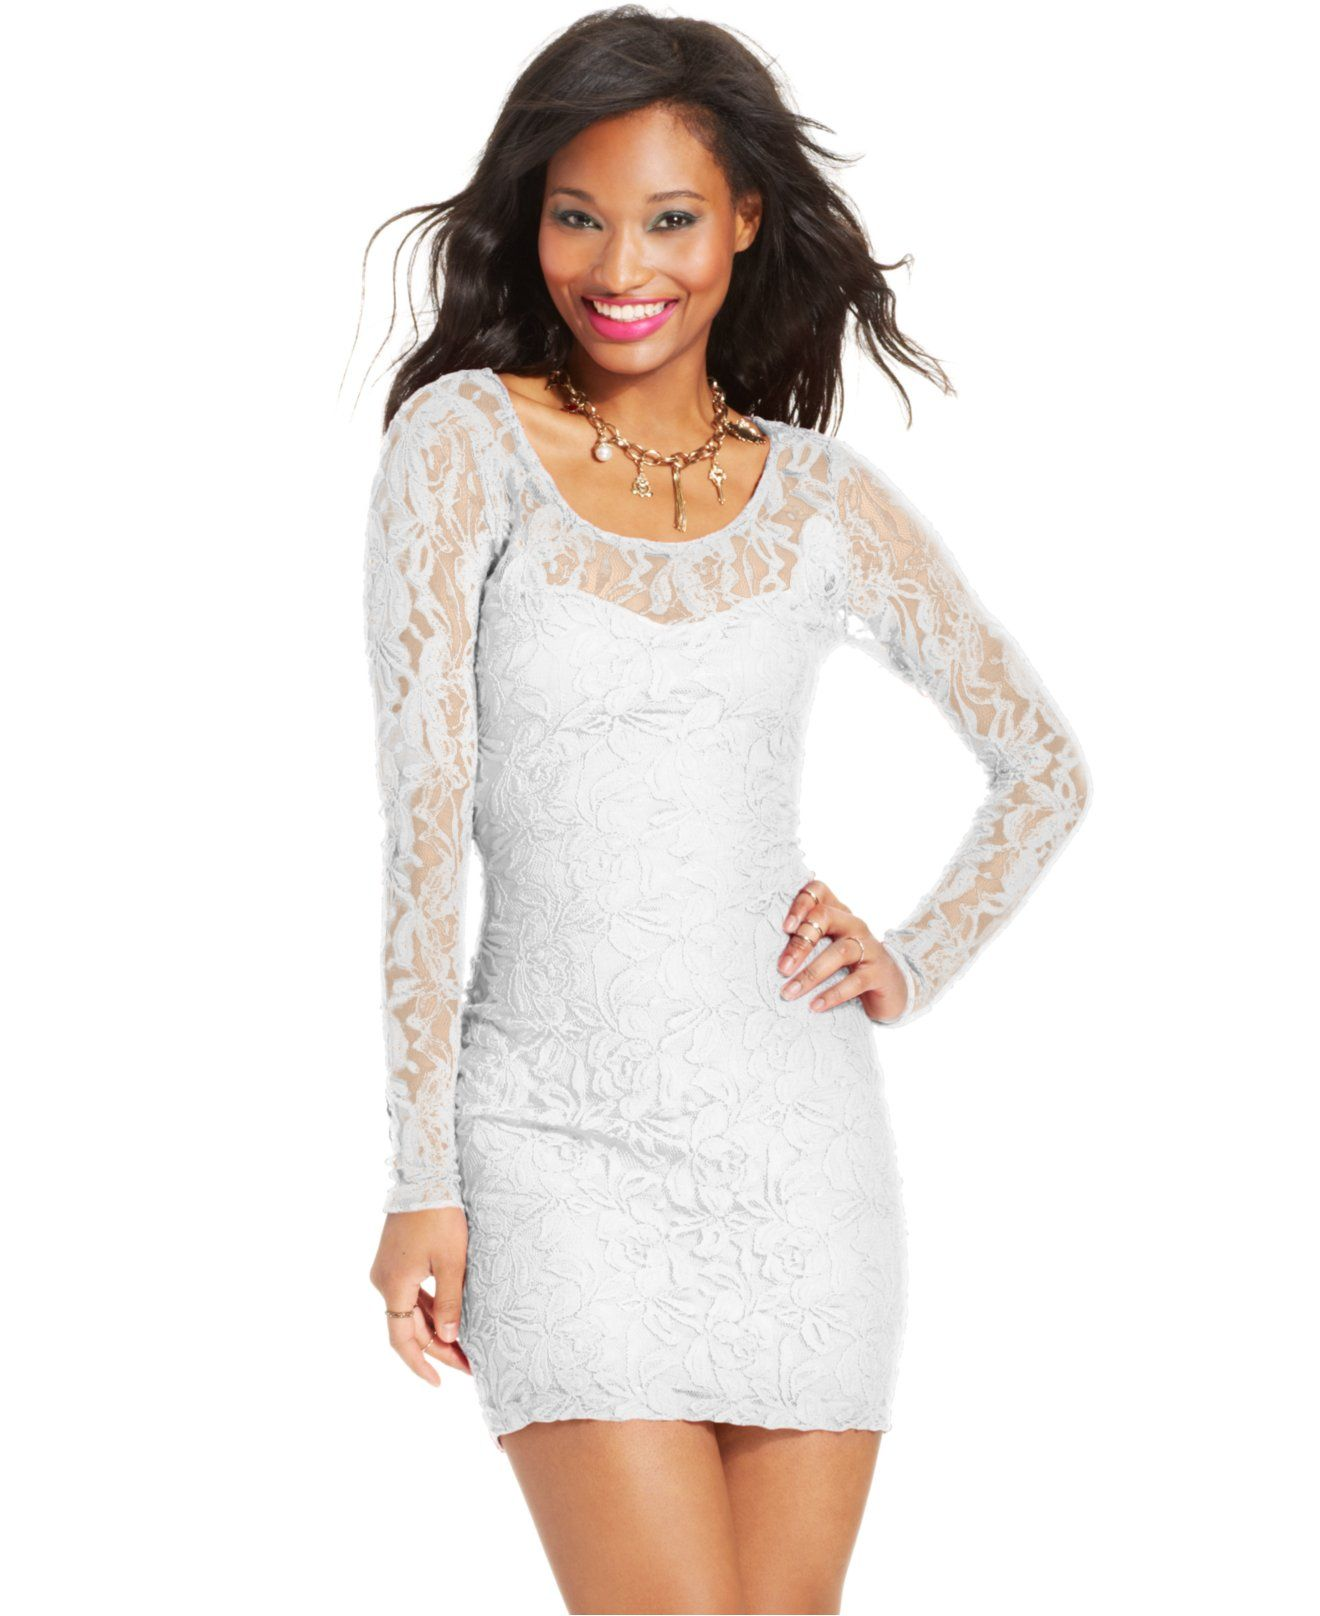 Material Girl Long Sleeve Lace Bodycon Dress Juniors Dresses Macy S Lace Bodycon Dress Long Sleeve Lace Bodycon Dress Junior Dresses [ 1616 x 1320 Pixel ]